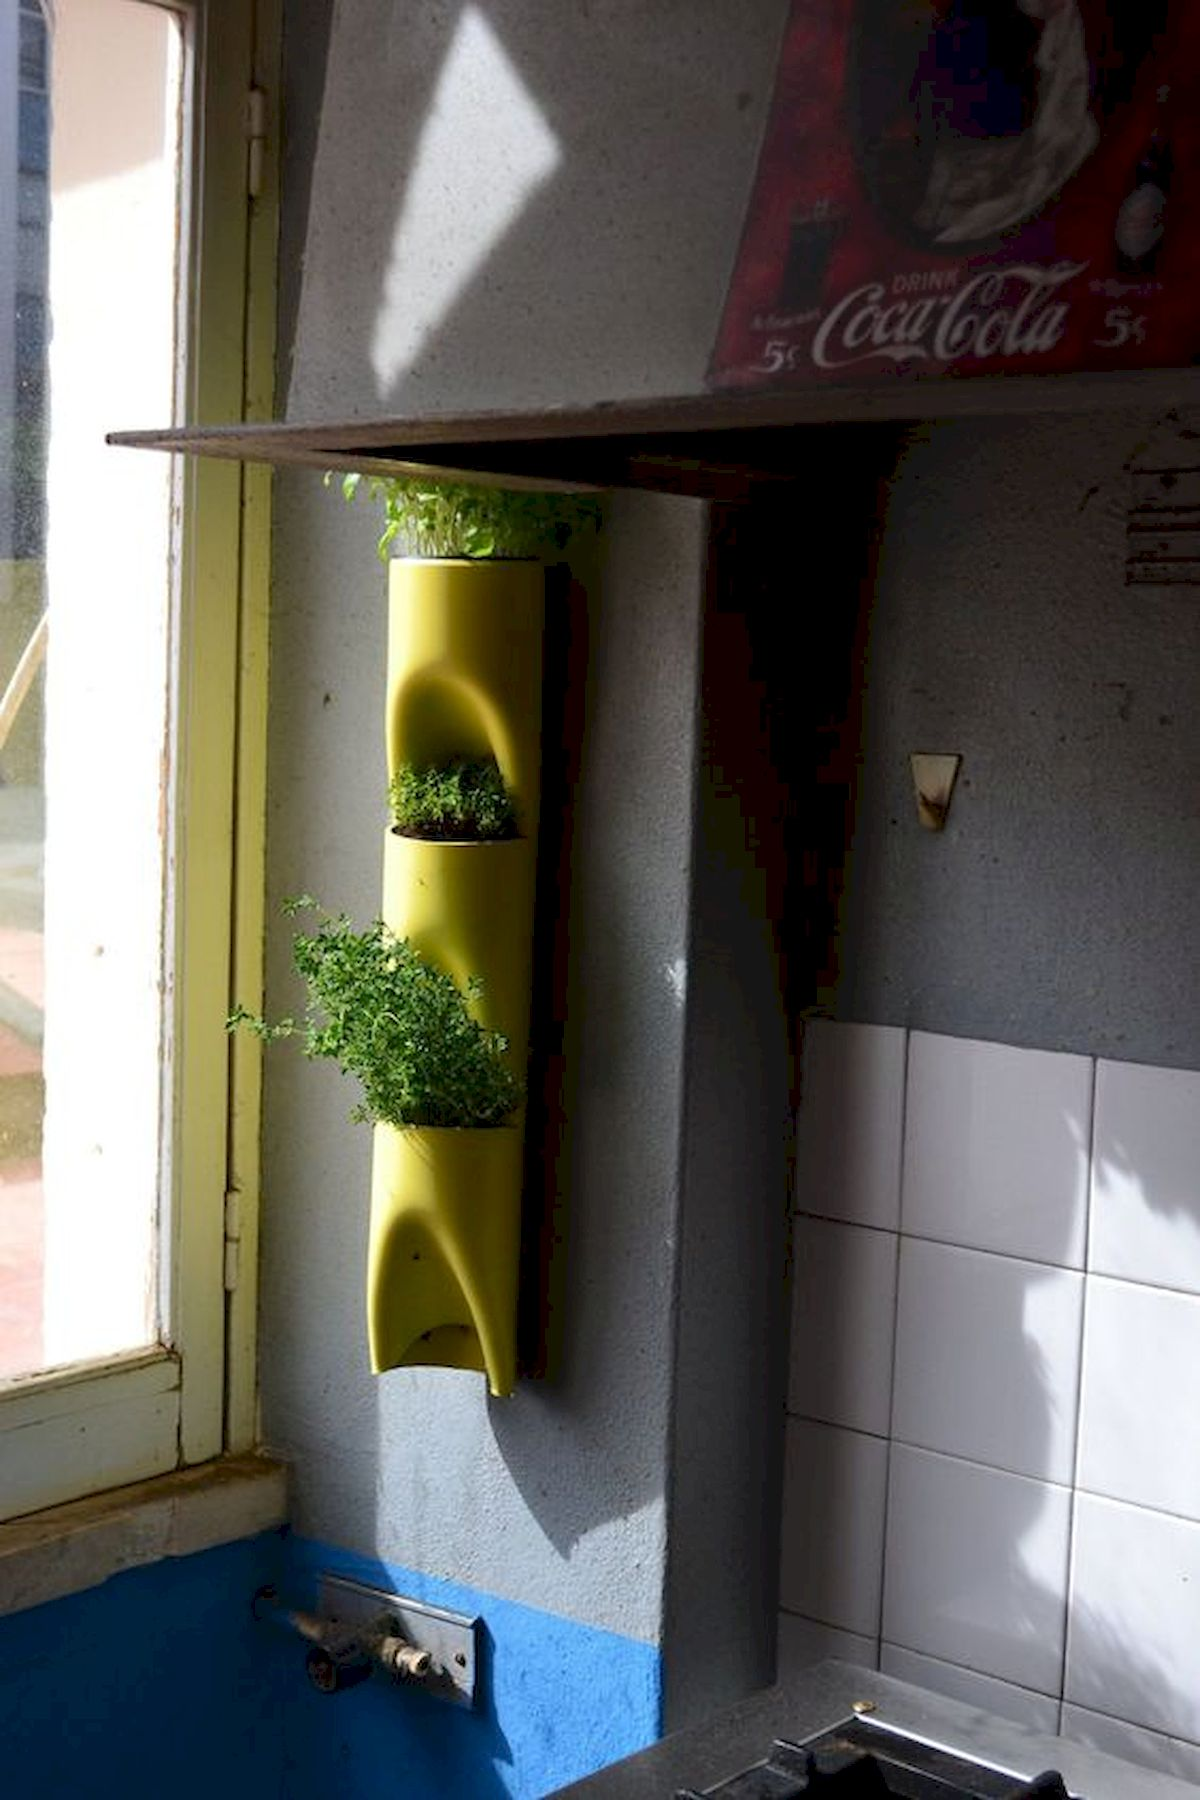 44 Fantastic Vertical Garden Ideas To Make Your Home Beautiful (13)